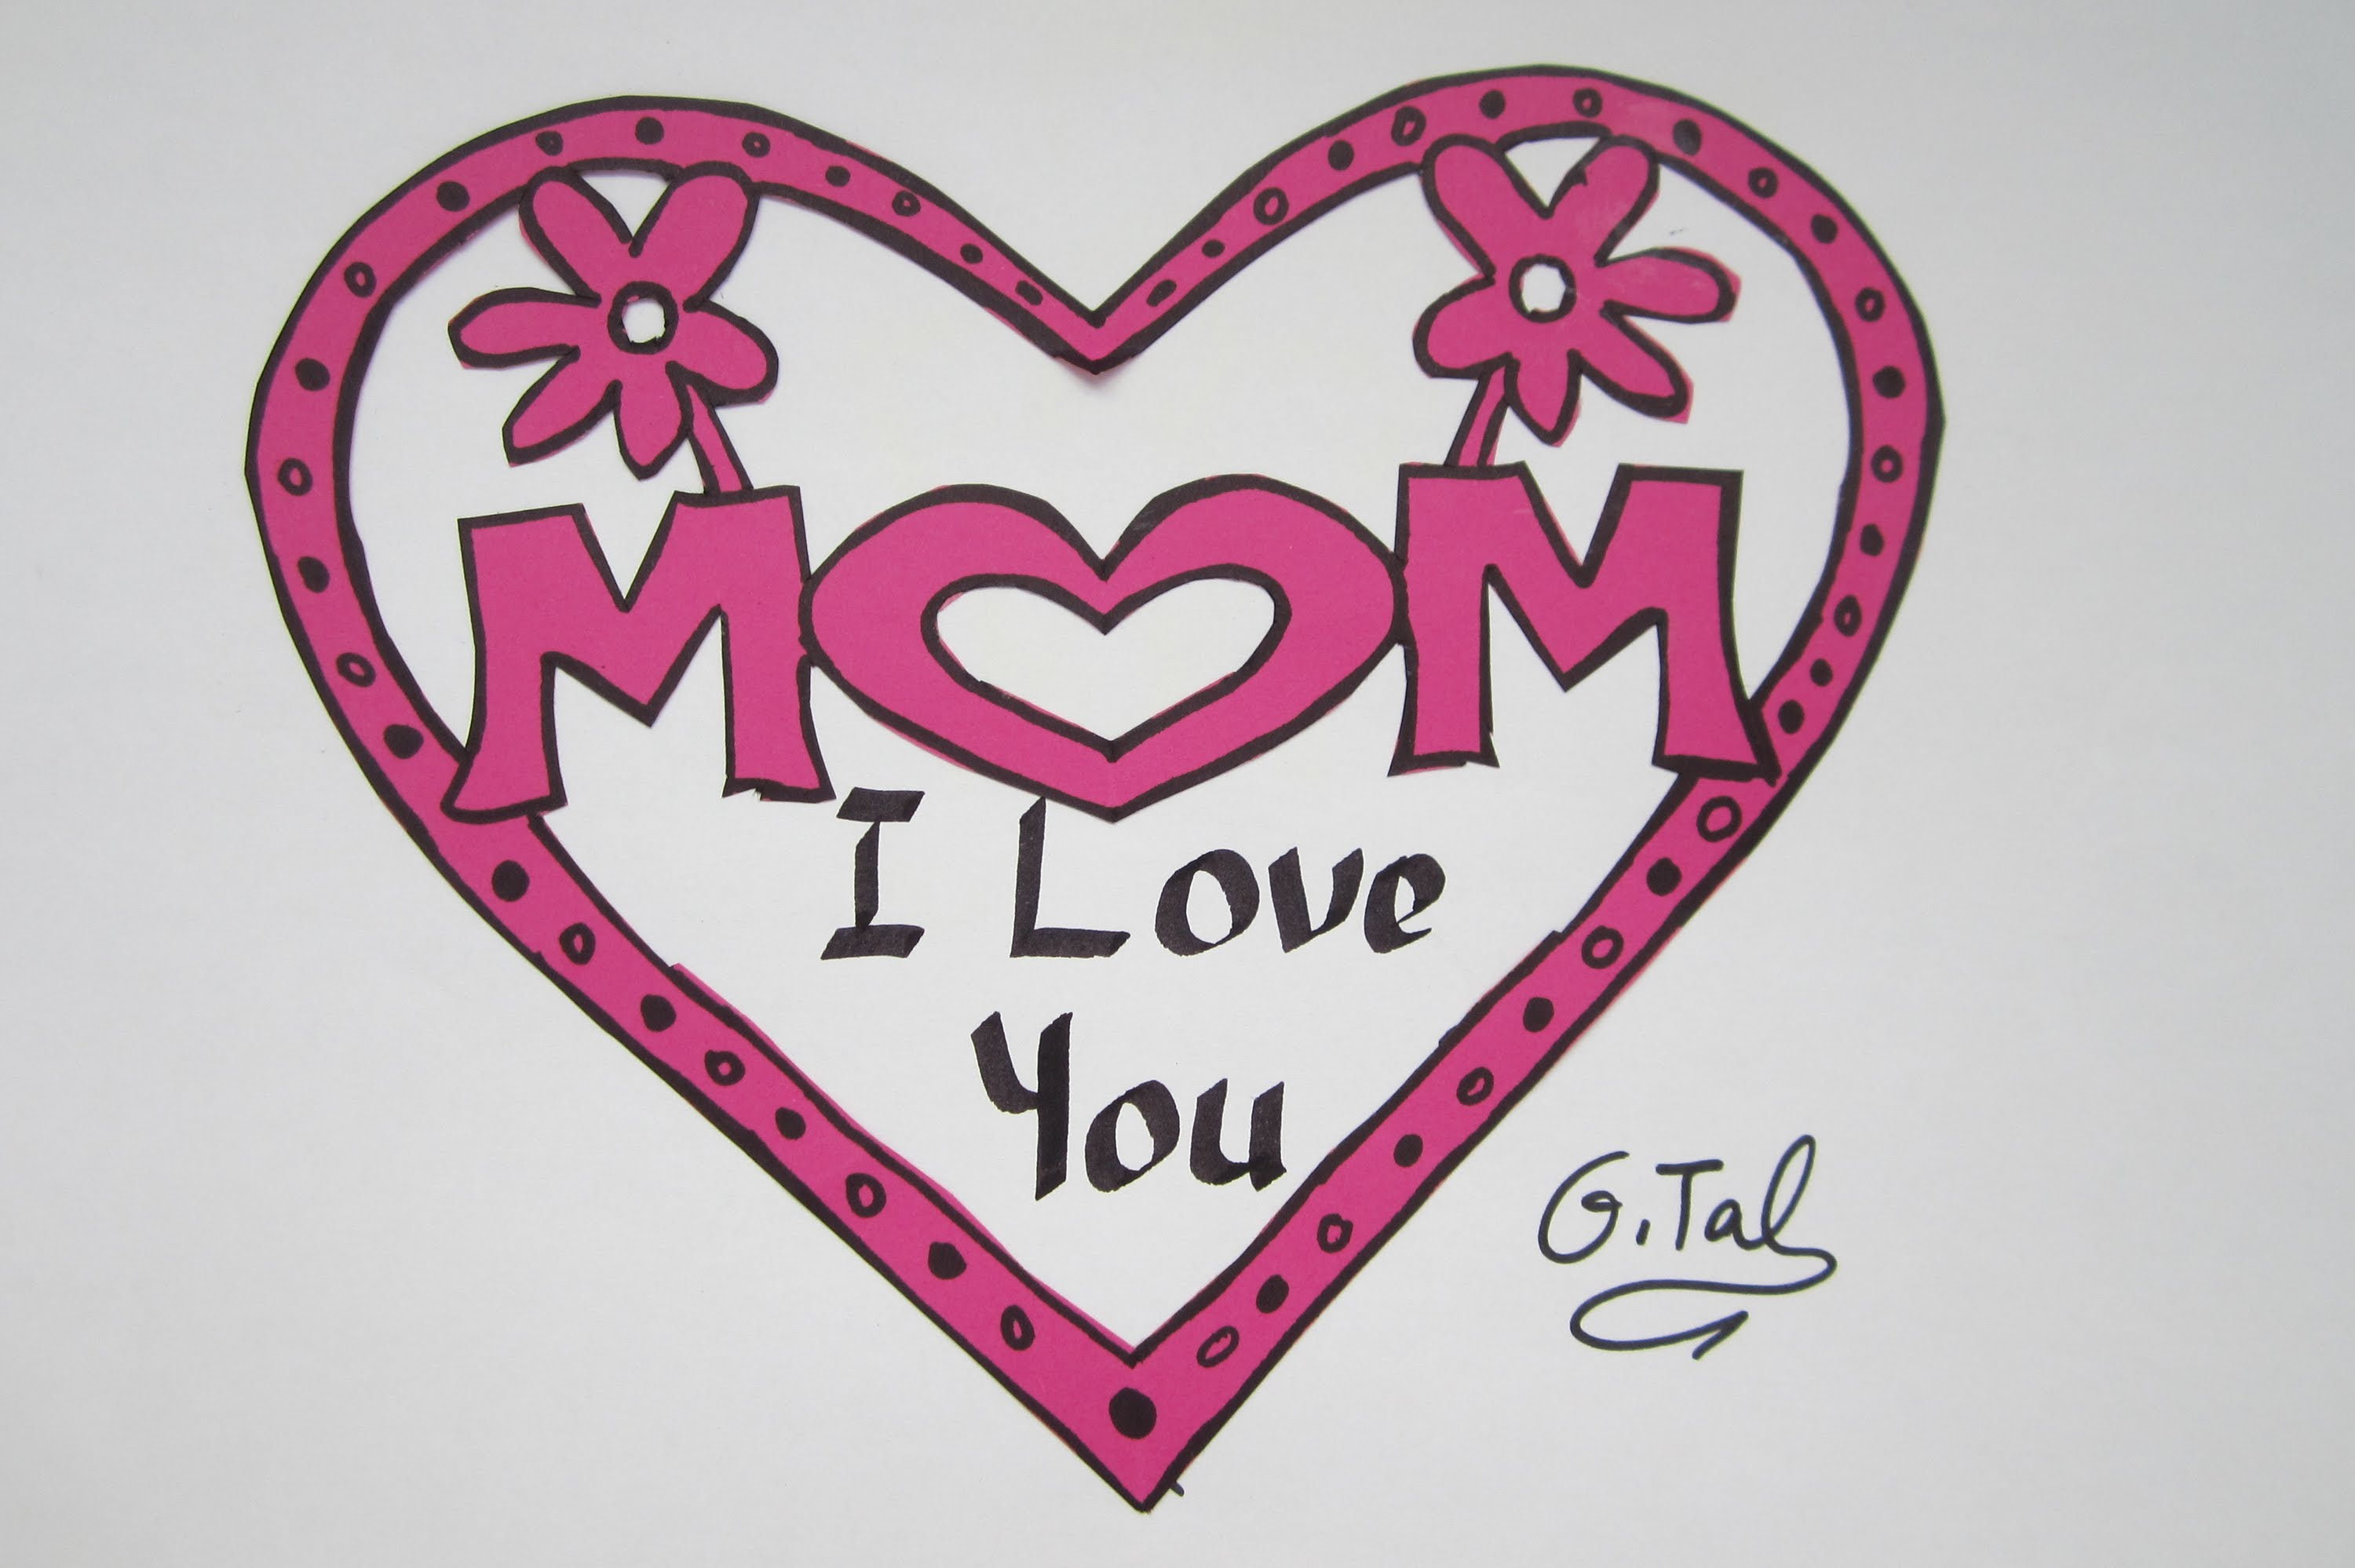 drawing ideas for mom's birthday ; Easy-Birthday-Card-Drawings-and-get-ideas-how-to-make-divine-birthday-Card-appearance-15